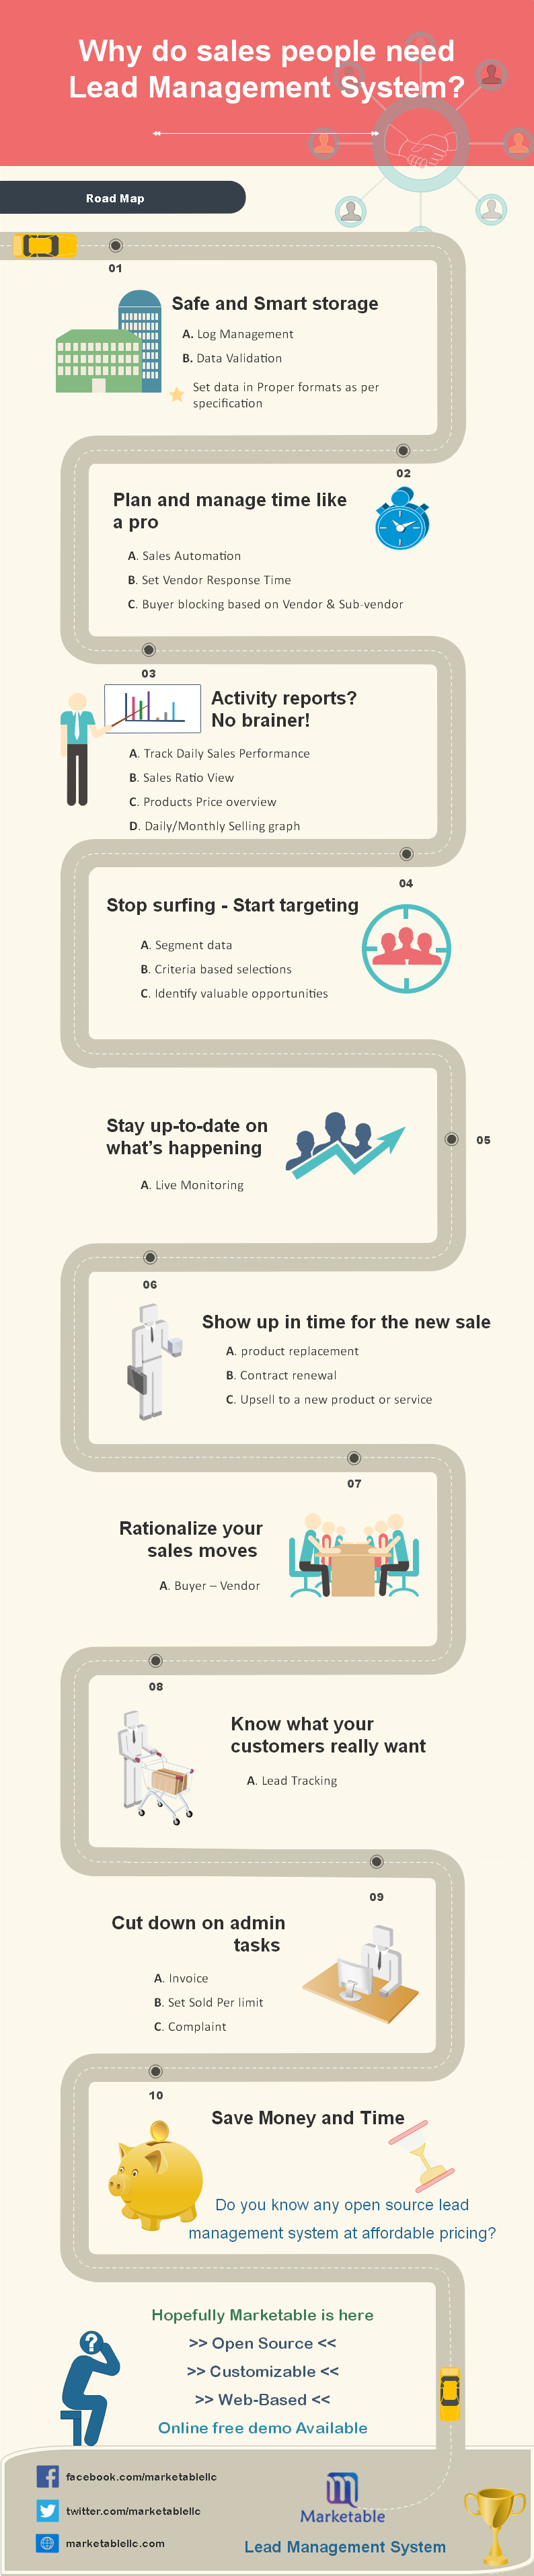 why-do-sales-people-need-lead-management-system-infographic-plaza